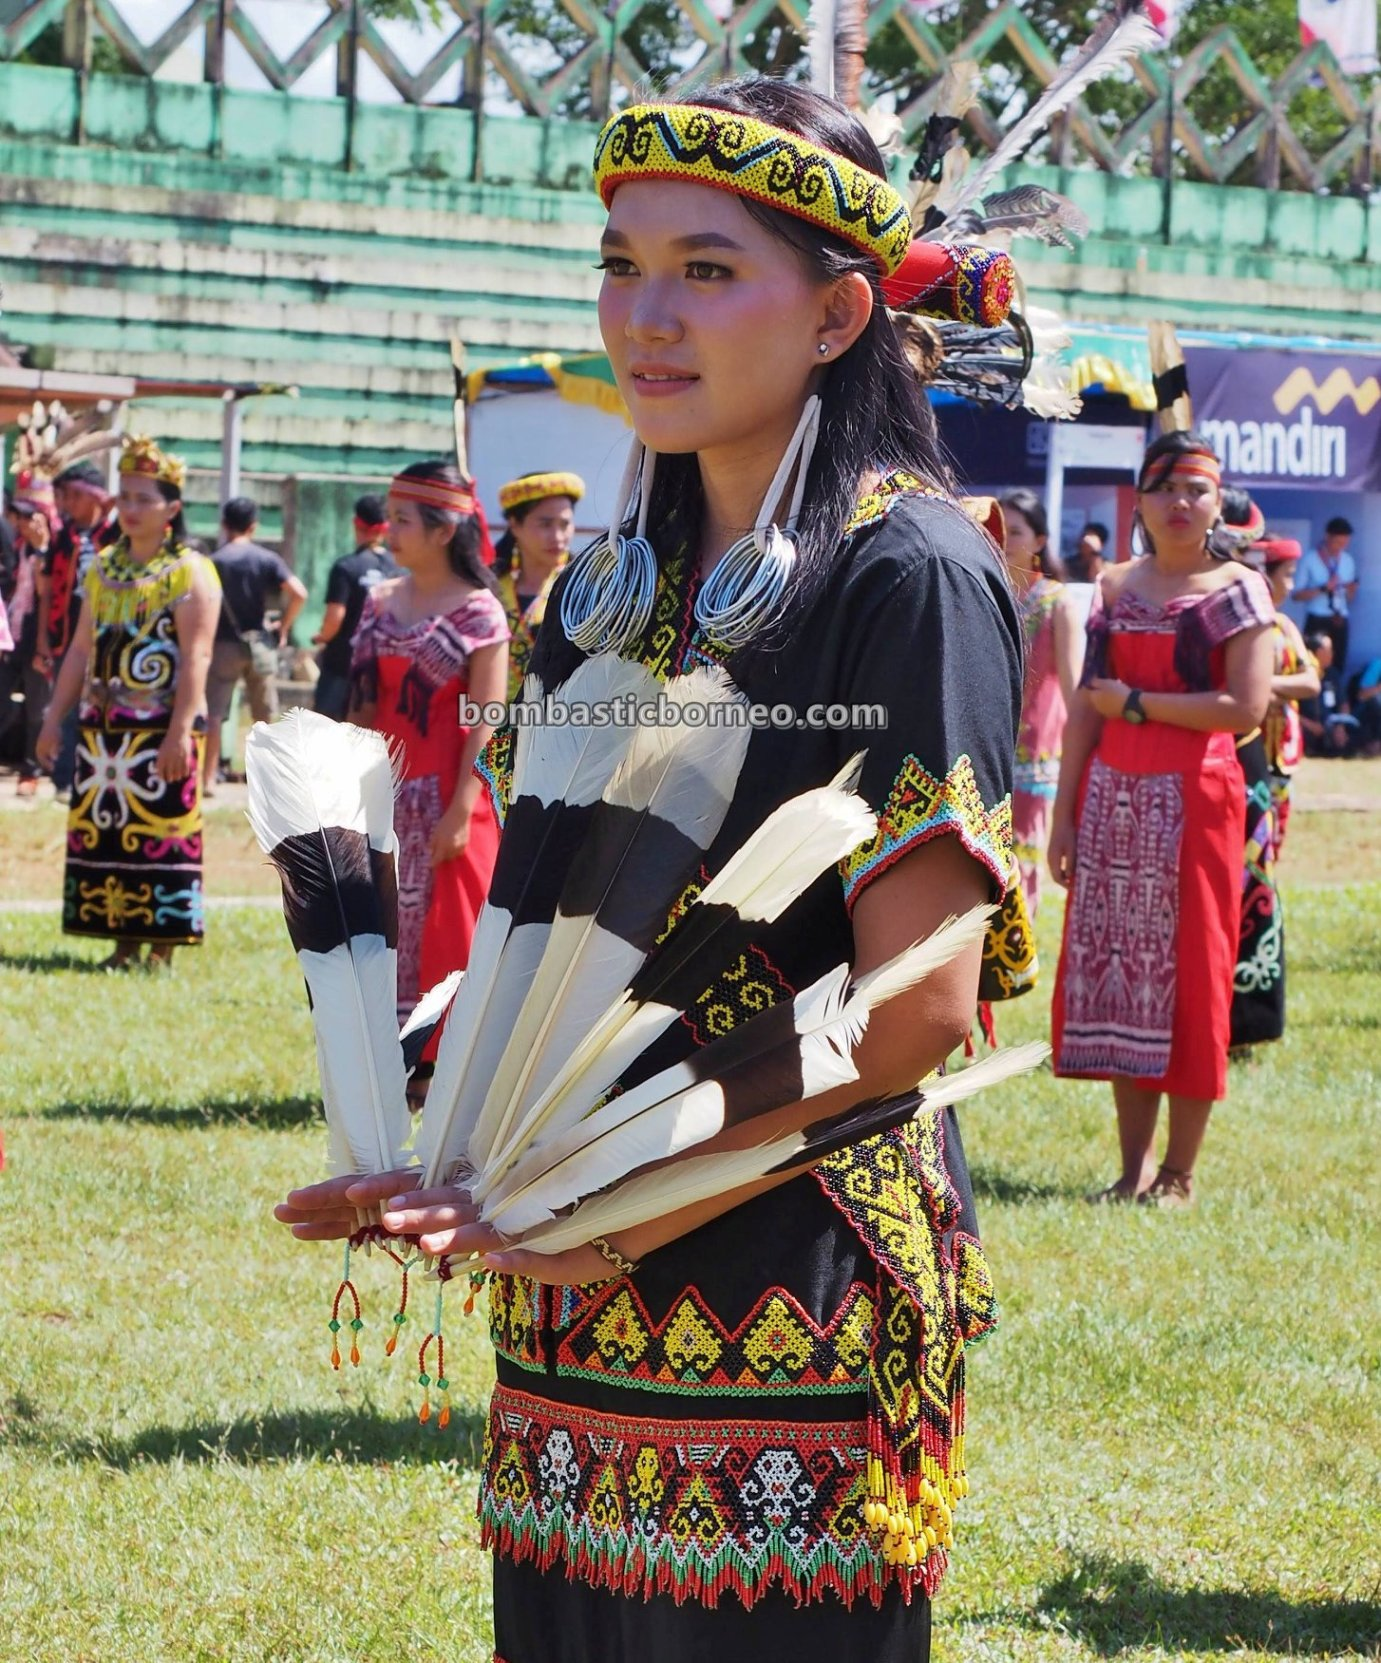 Gawai harvest festival, traditional, culture, Indonesia, Putussibau, indigenous, tribal, Suku Dayak, Tourism, travel guide, Borneo, Cross Border, 探索婆罗洲文化, 印尼西加里曼丹, 达雅克丰收节日